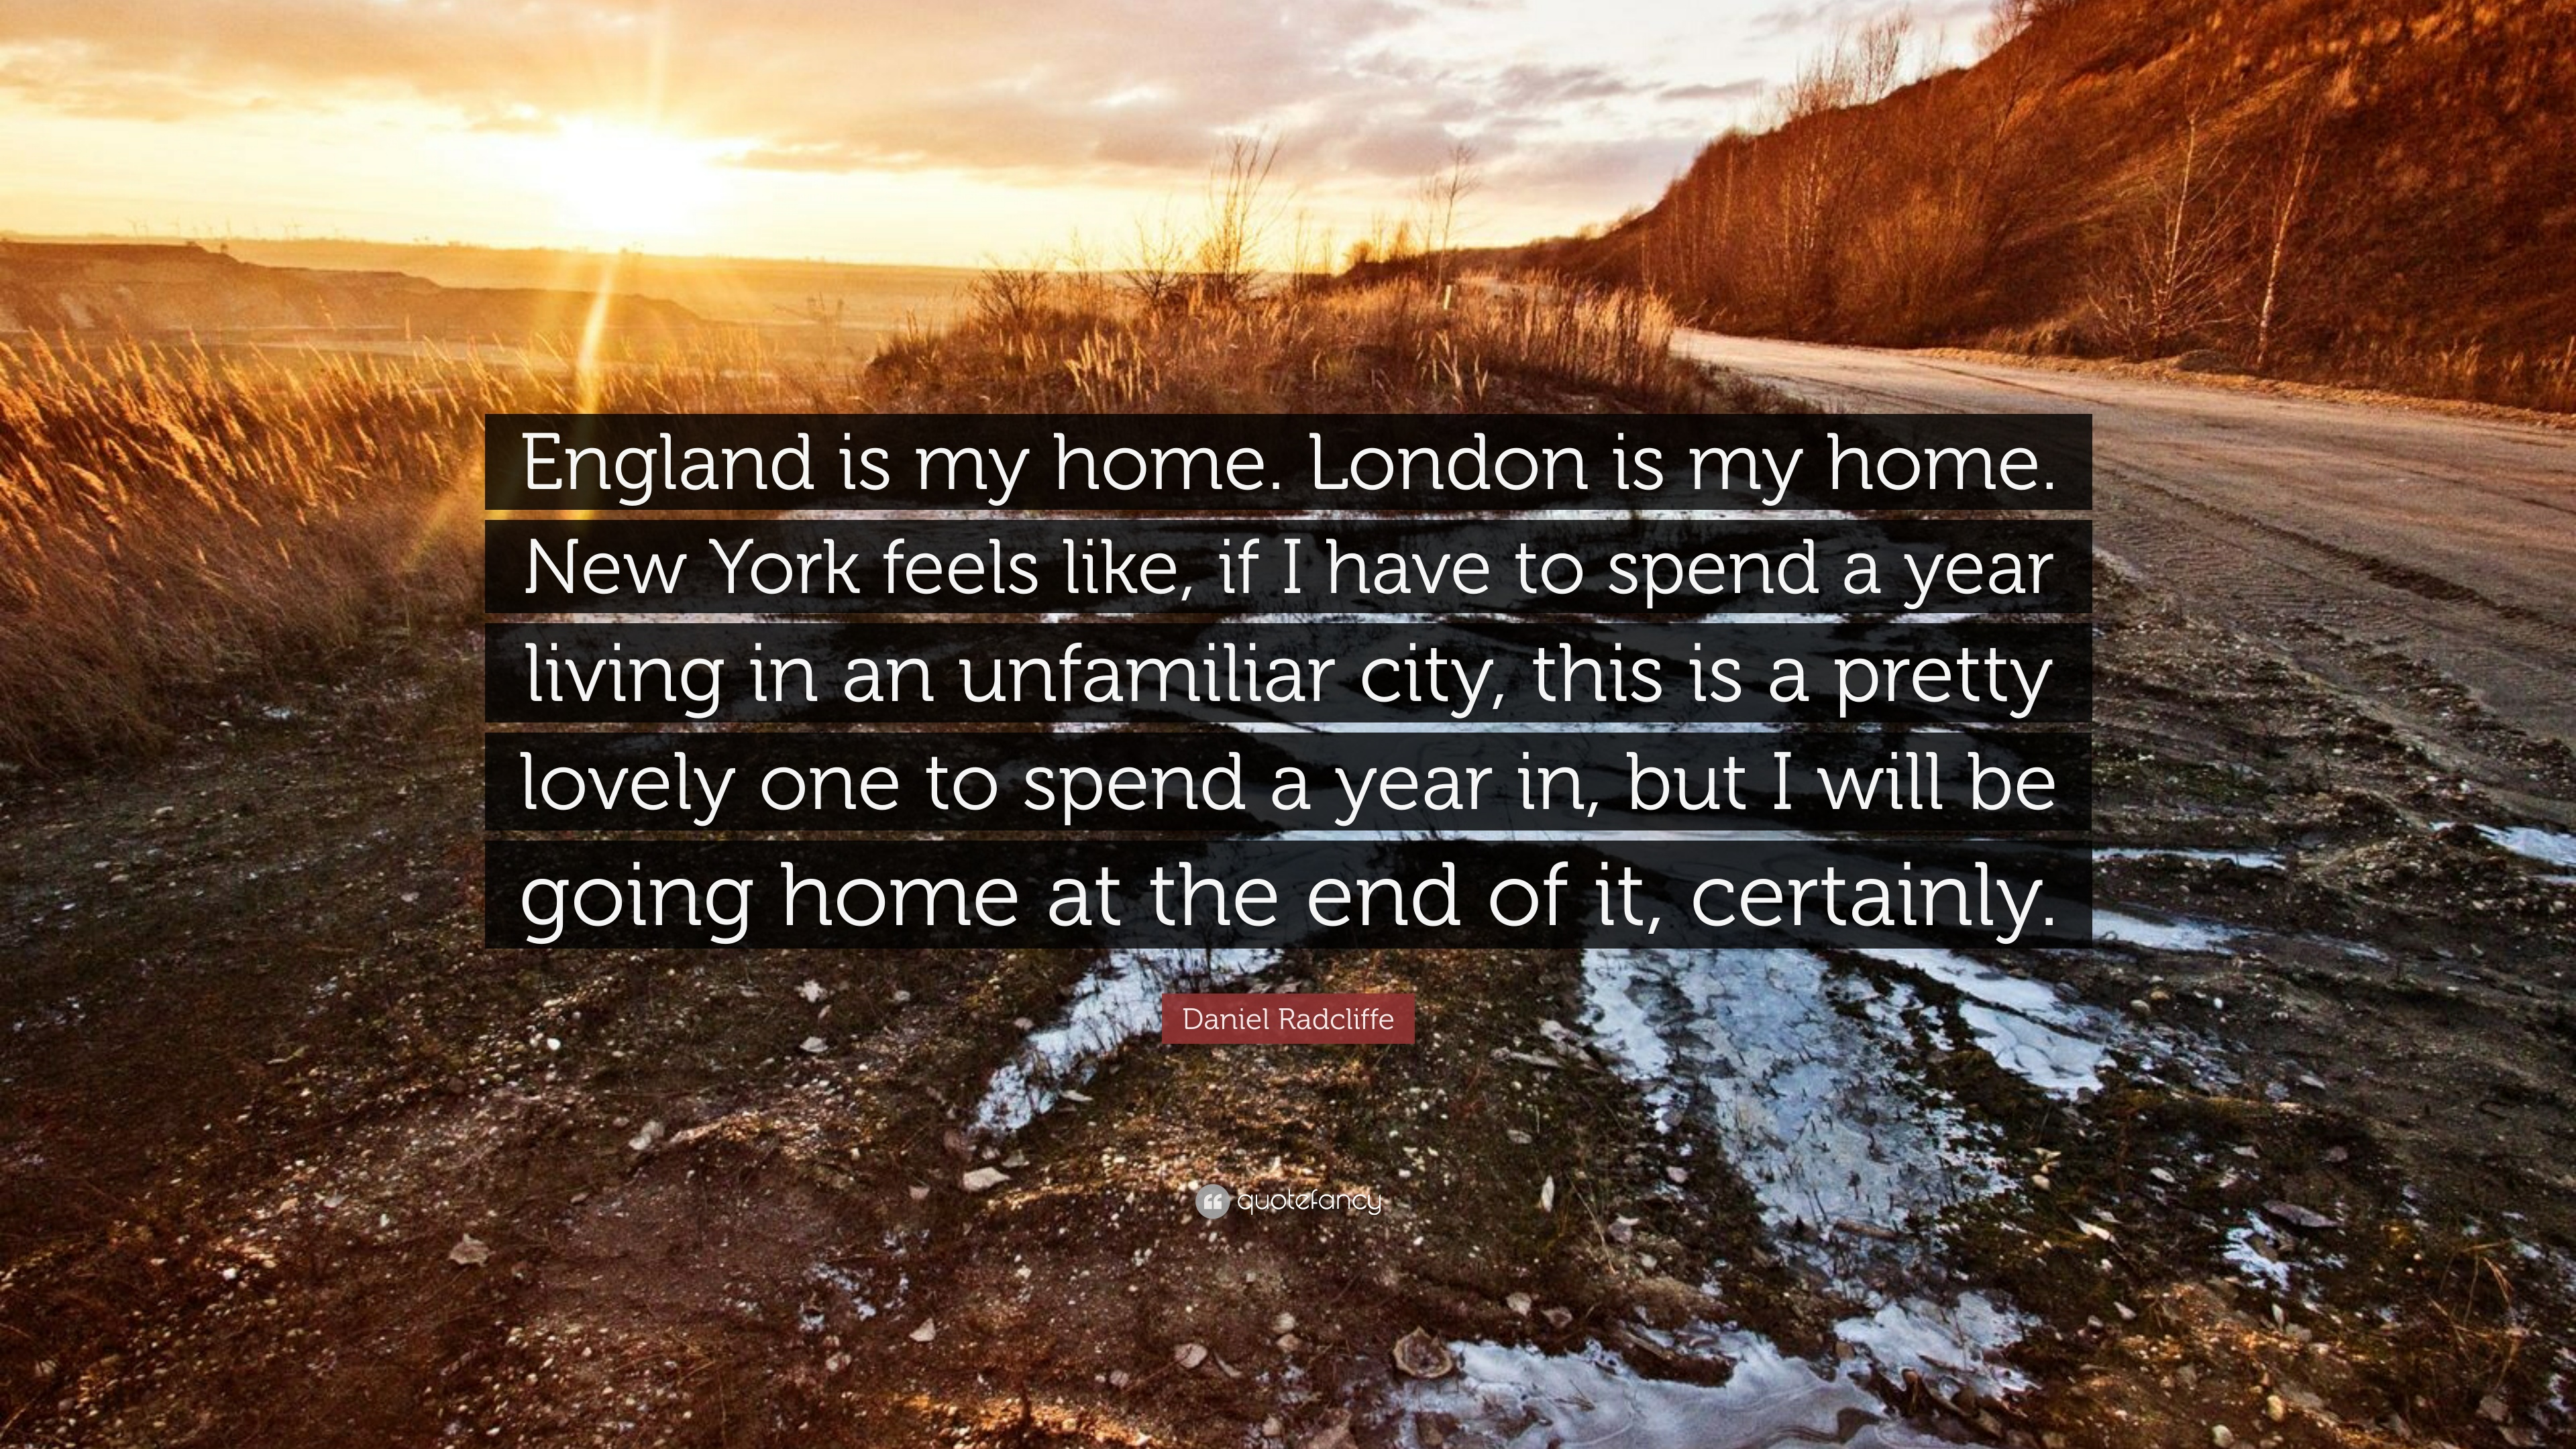 Daniel radcliffe quote england is my home london is my home new daniel radcliffe quote england is my home london is my home new voltagebd Image collections